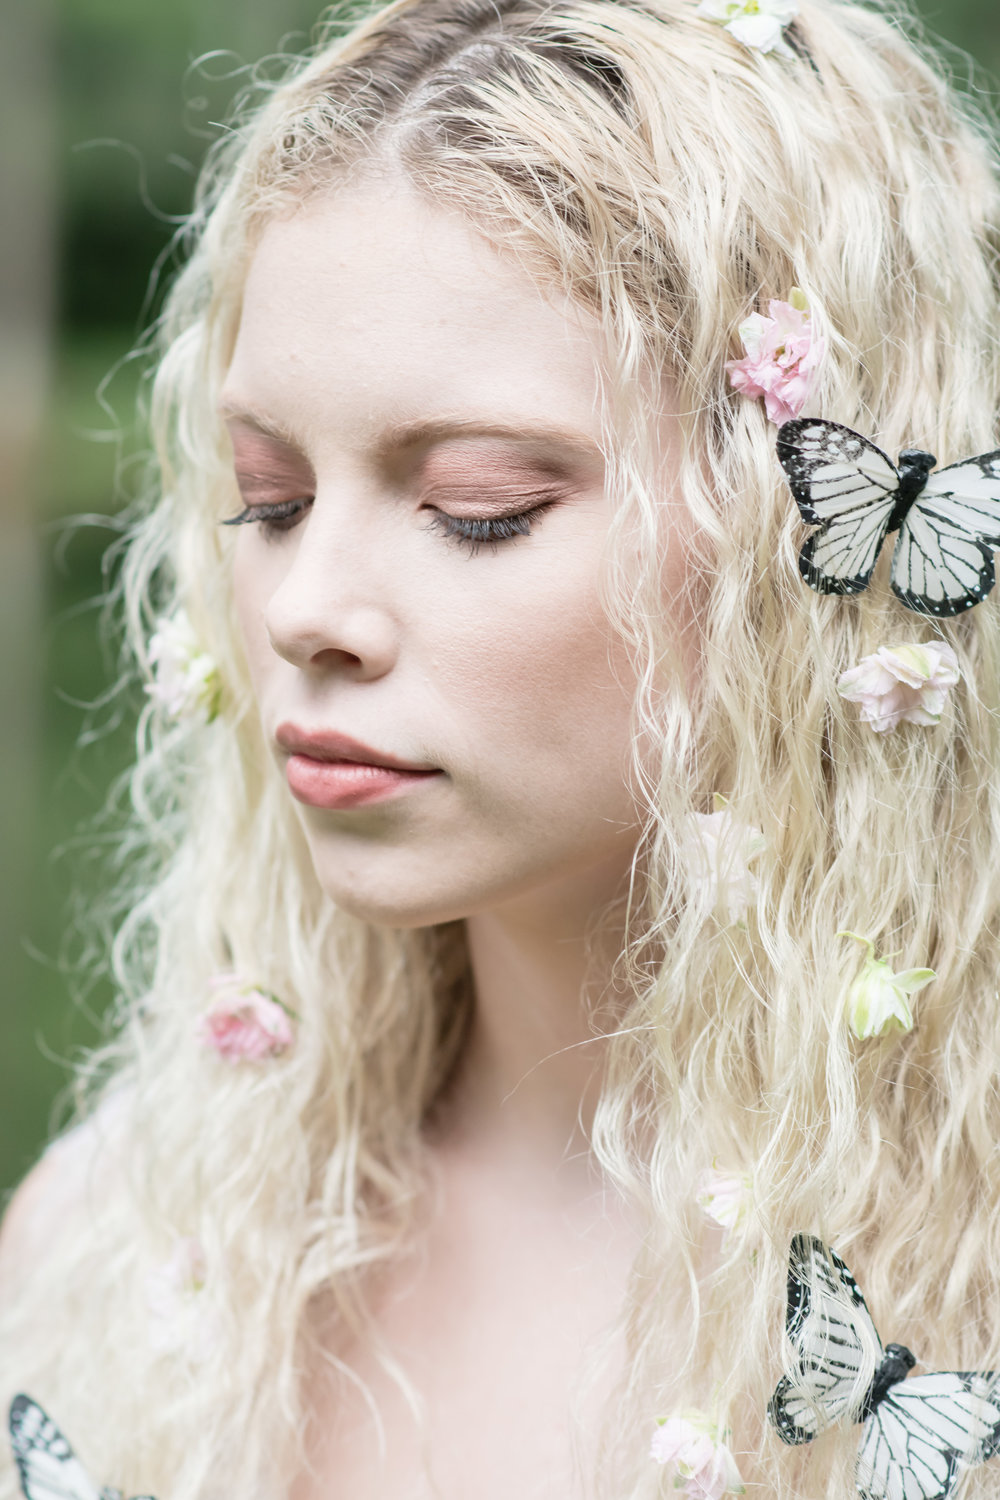 close of bridal makeup with florals and butterflies on hair